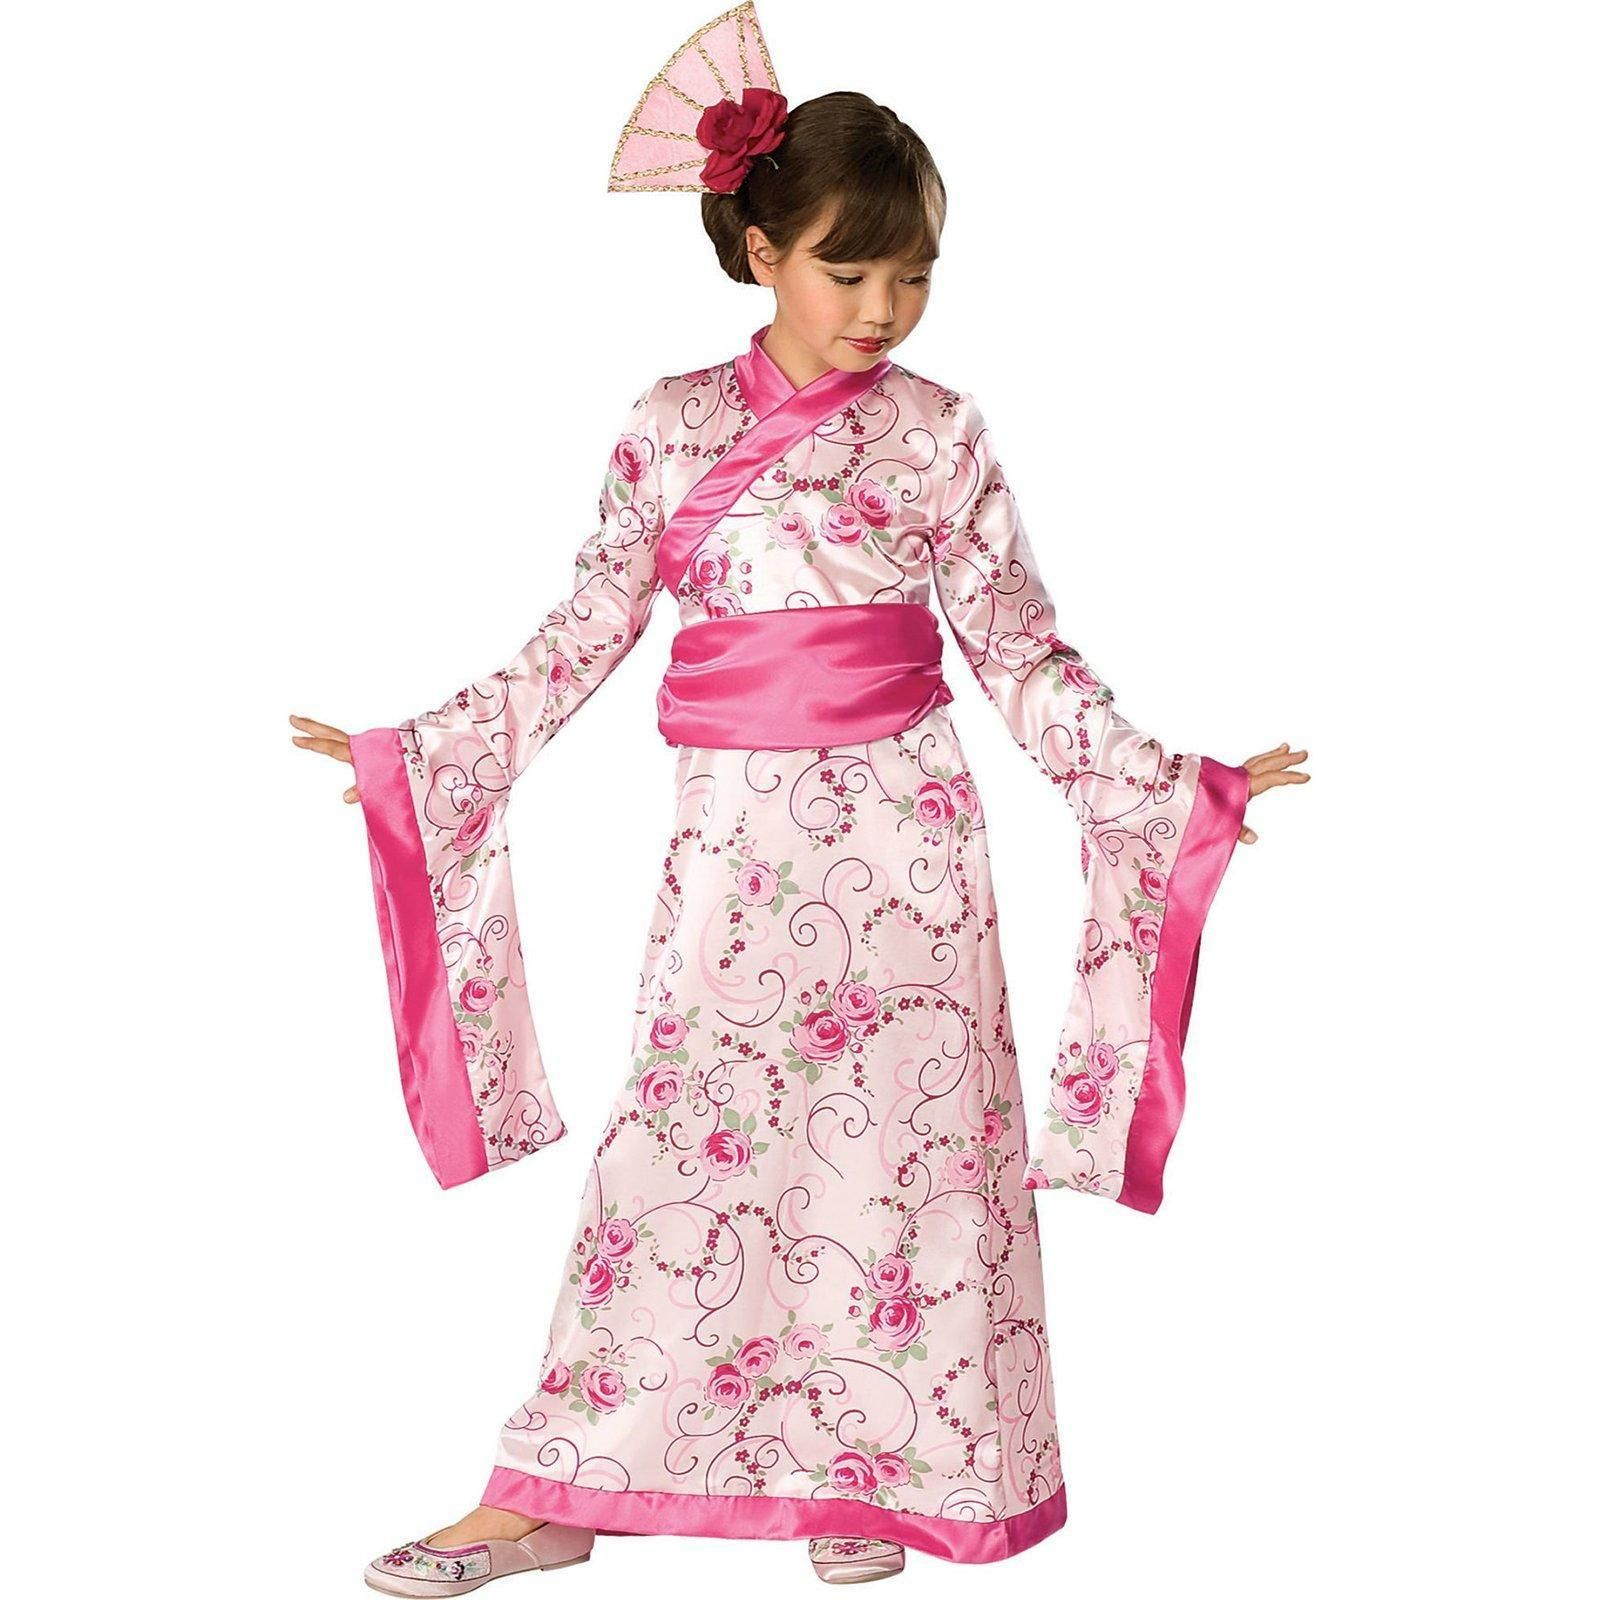 Asian Princess Child Costume | Products | Pinterest